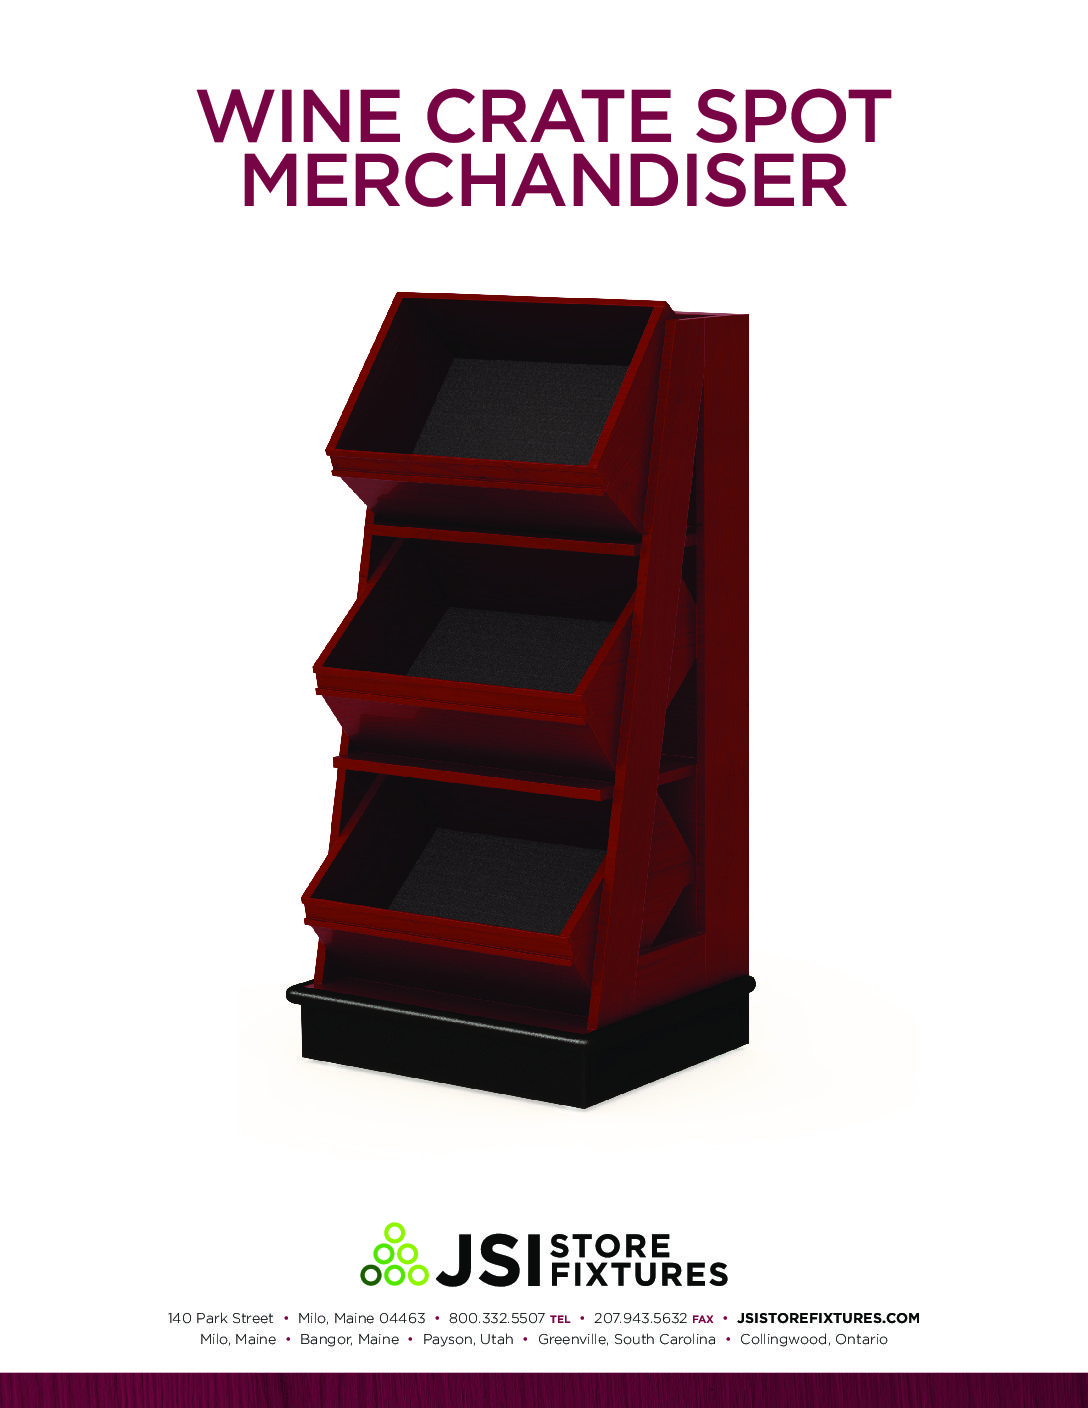 Wine Crate Spot Merchandiser Spec Sheet